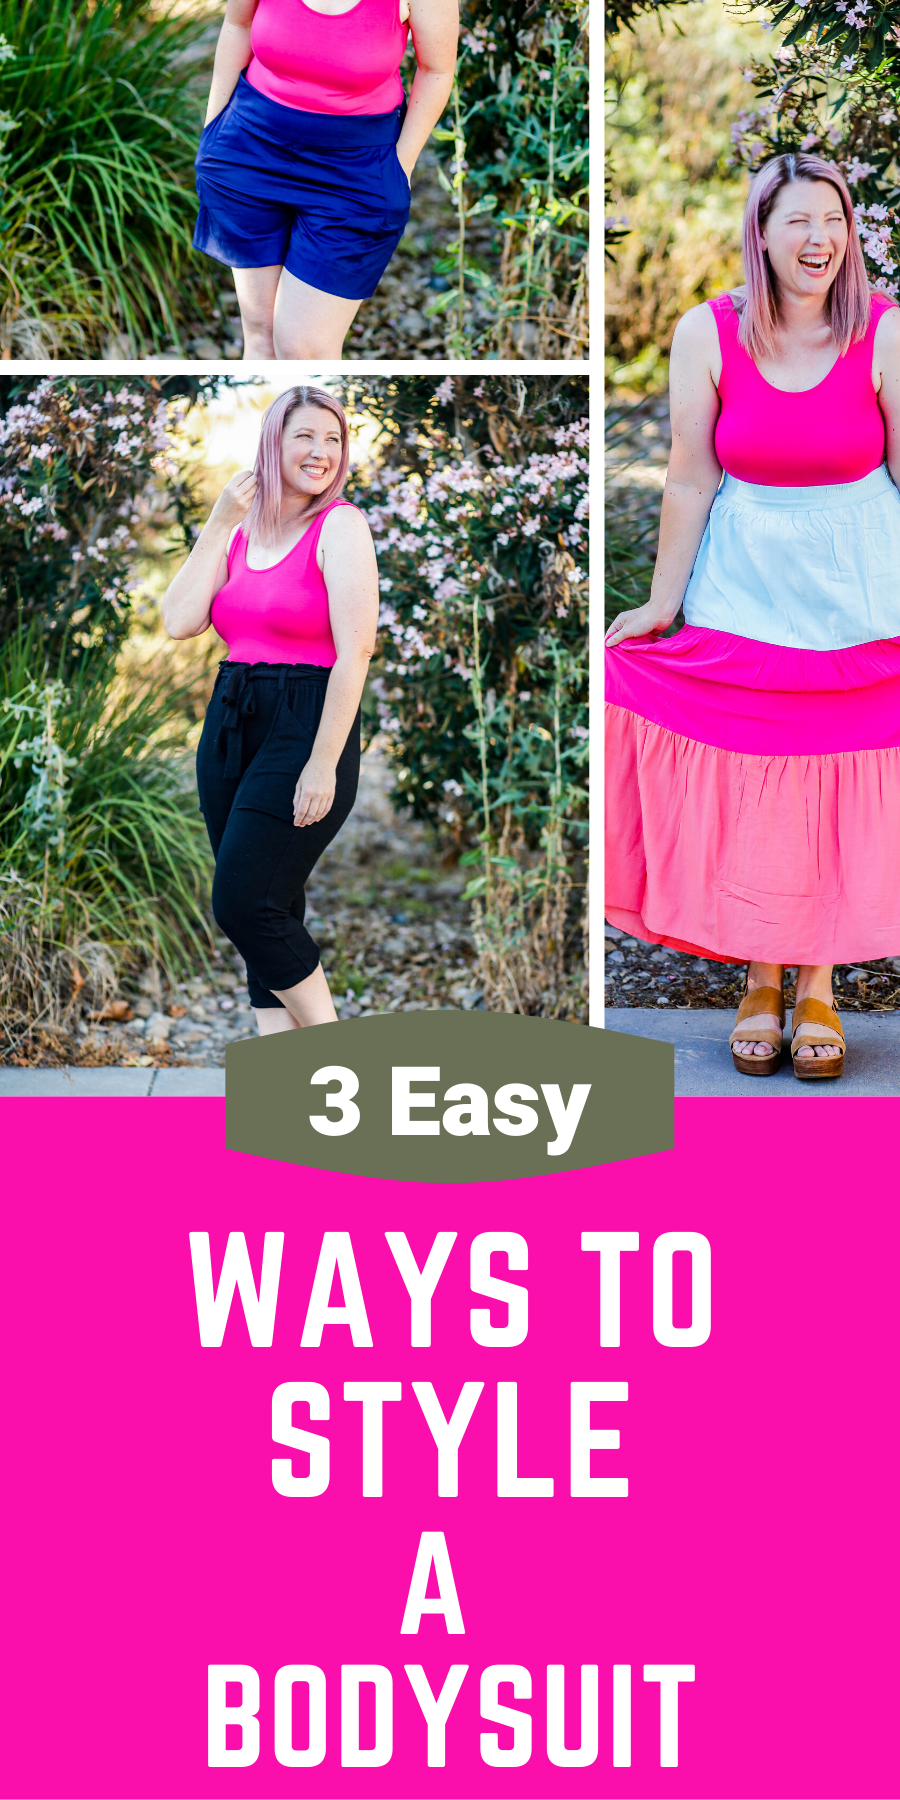 On the hunt for ways to style a bodysuit? These simple bodysuit outfits are fun, easy to wear and super flattering!